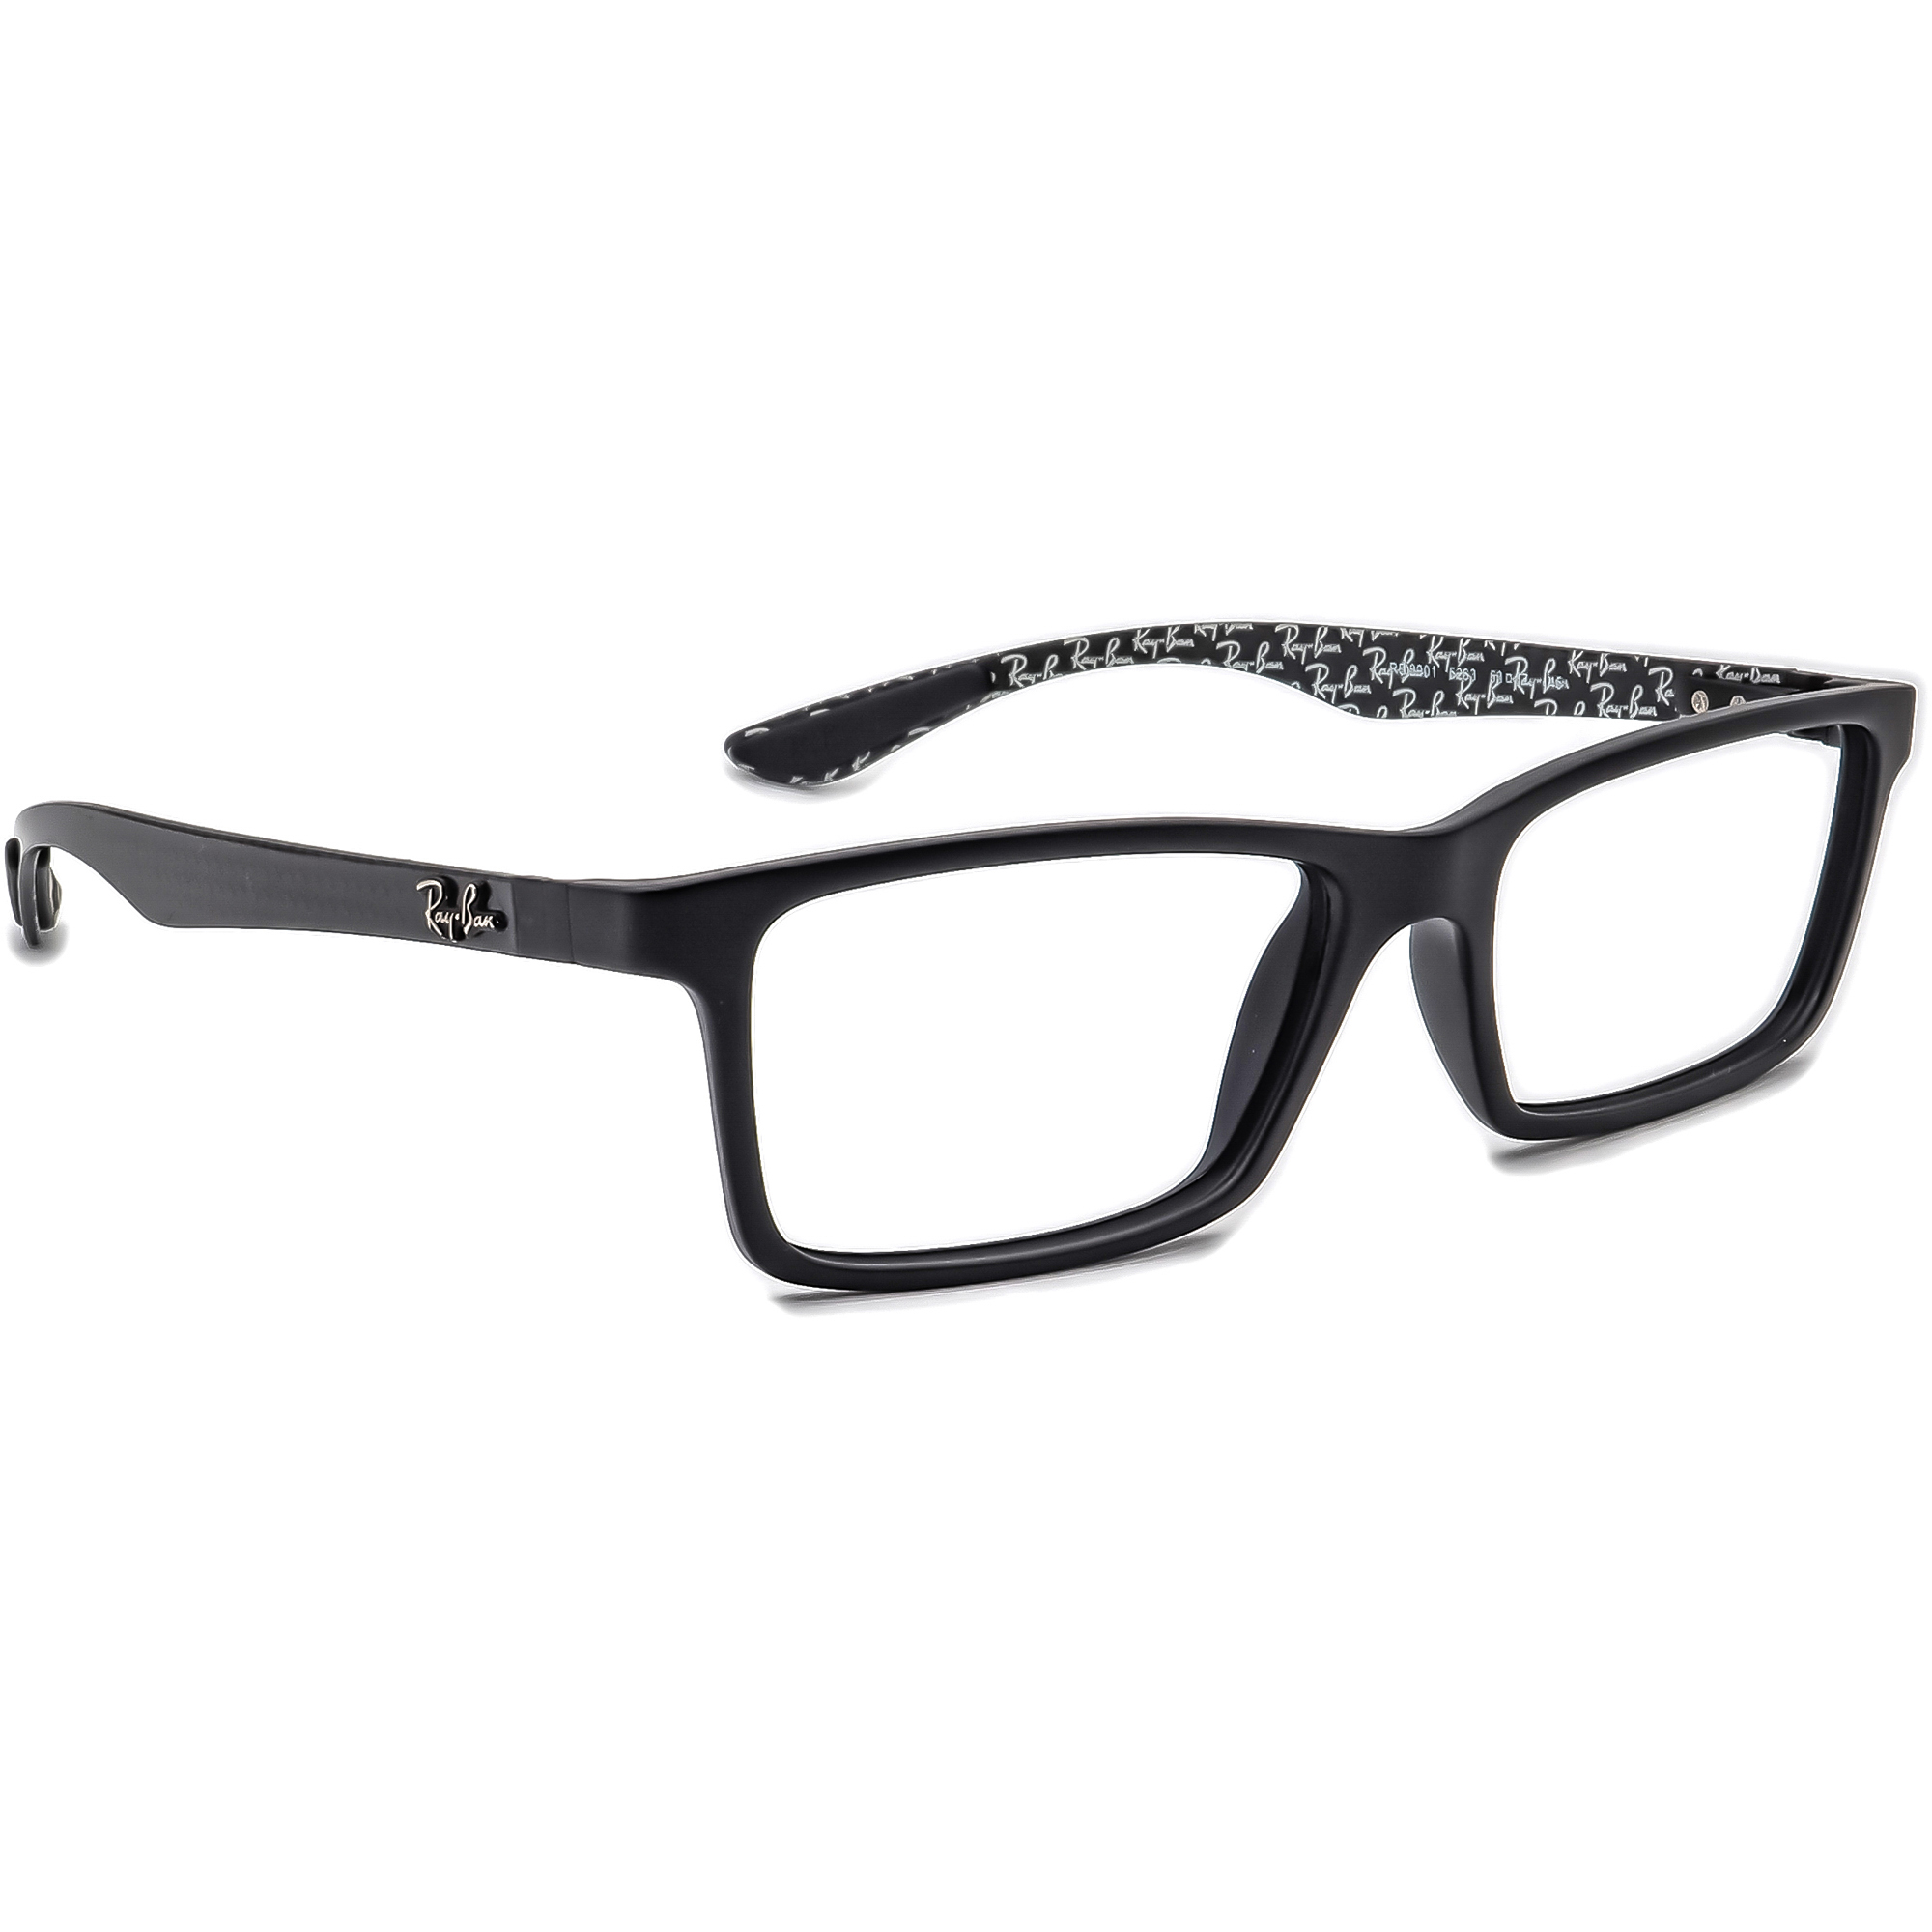 Ray-Ban RB 8901 5263 Carbon Fiber Eyeglasses